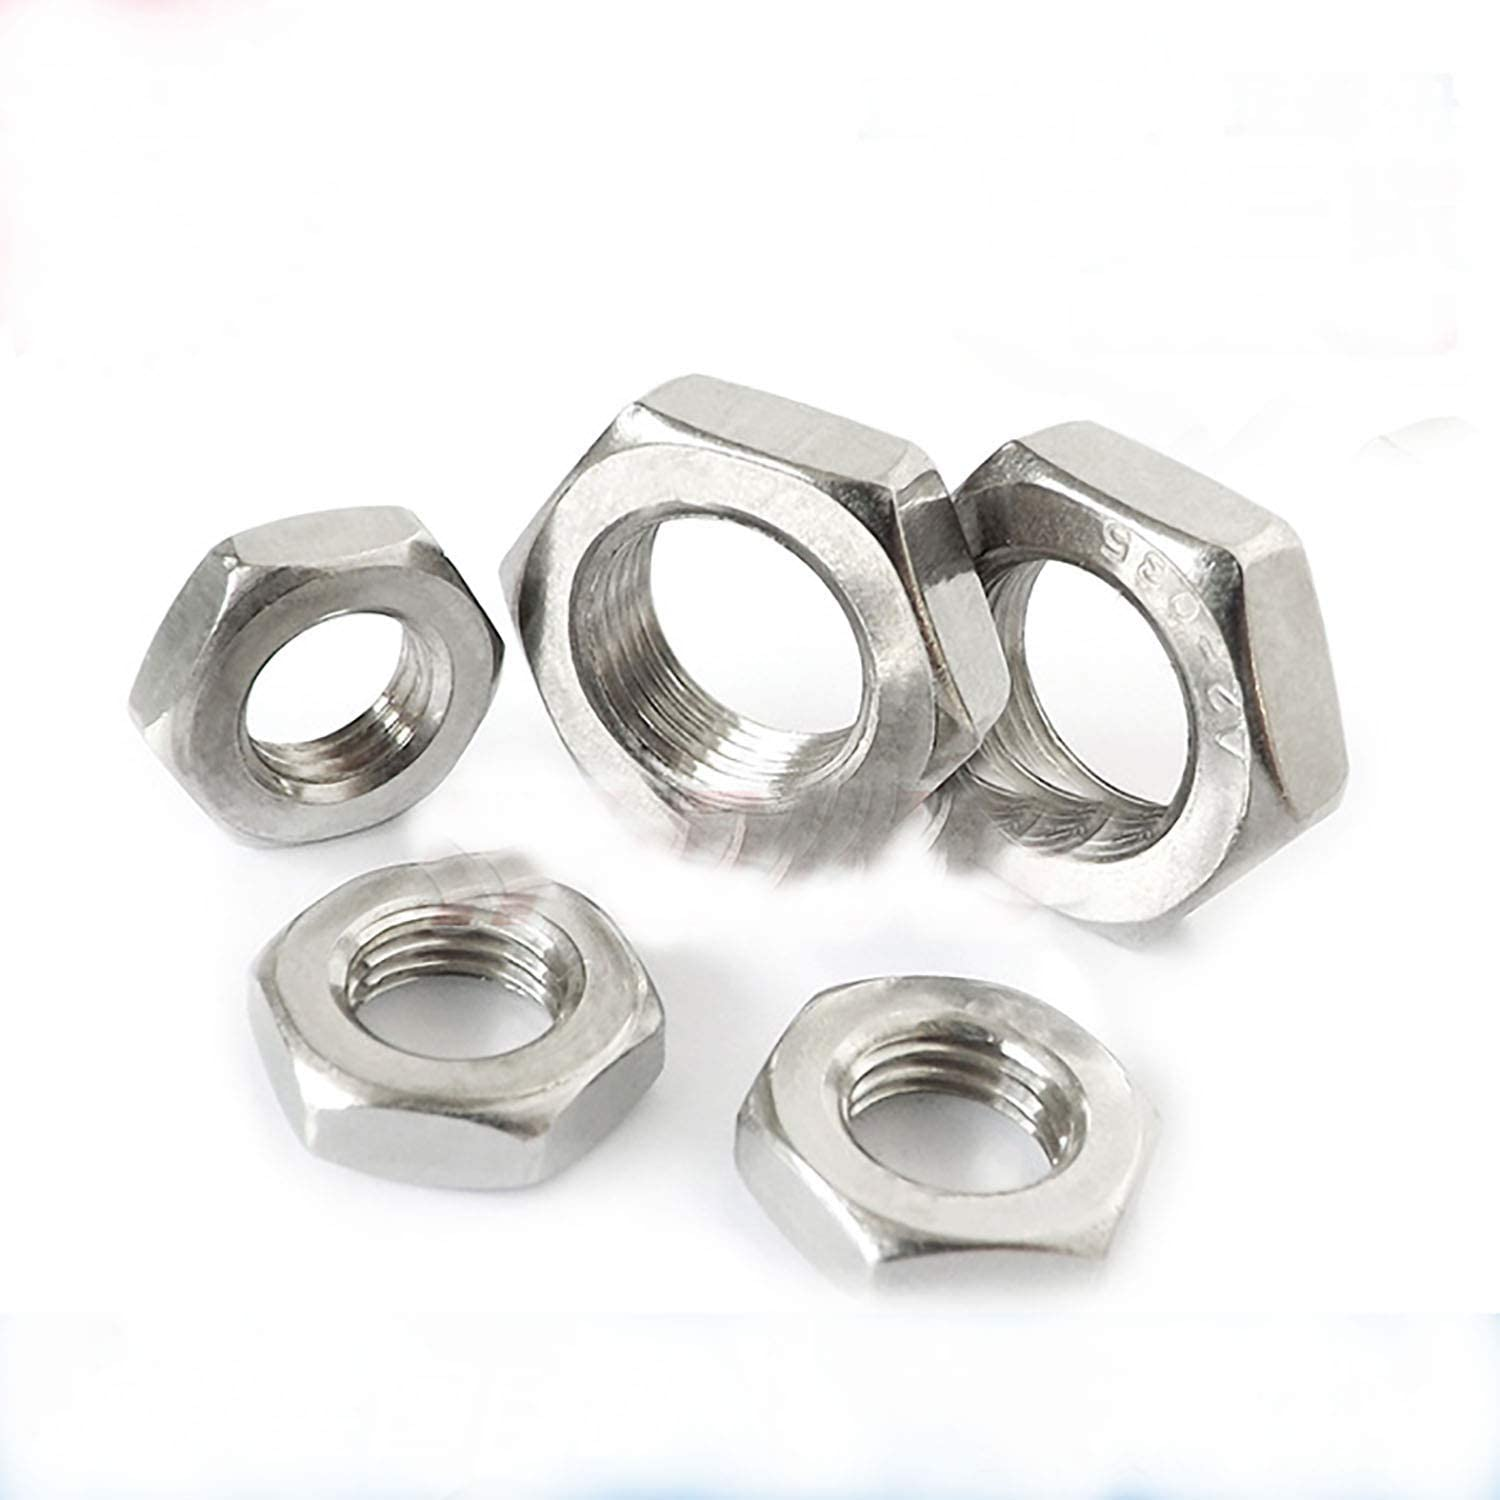 Smartsails 1//4-20,5//16-18 Stainless Steel Surface Hexagon Thin Nuts 100 Pieces 304 Stainless Steel Nuts